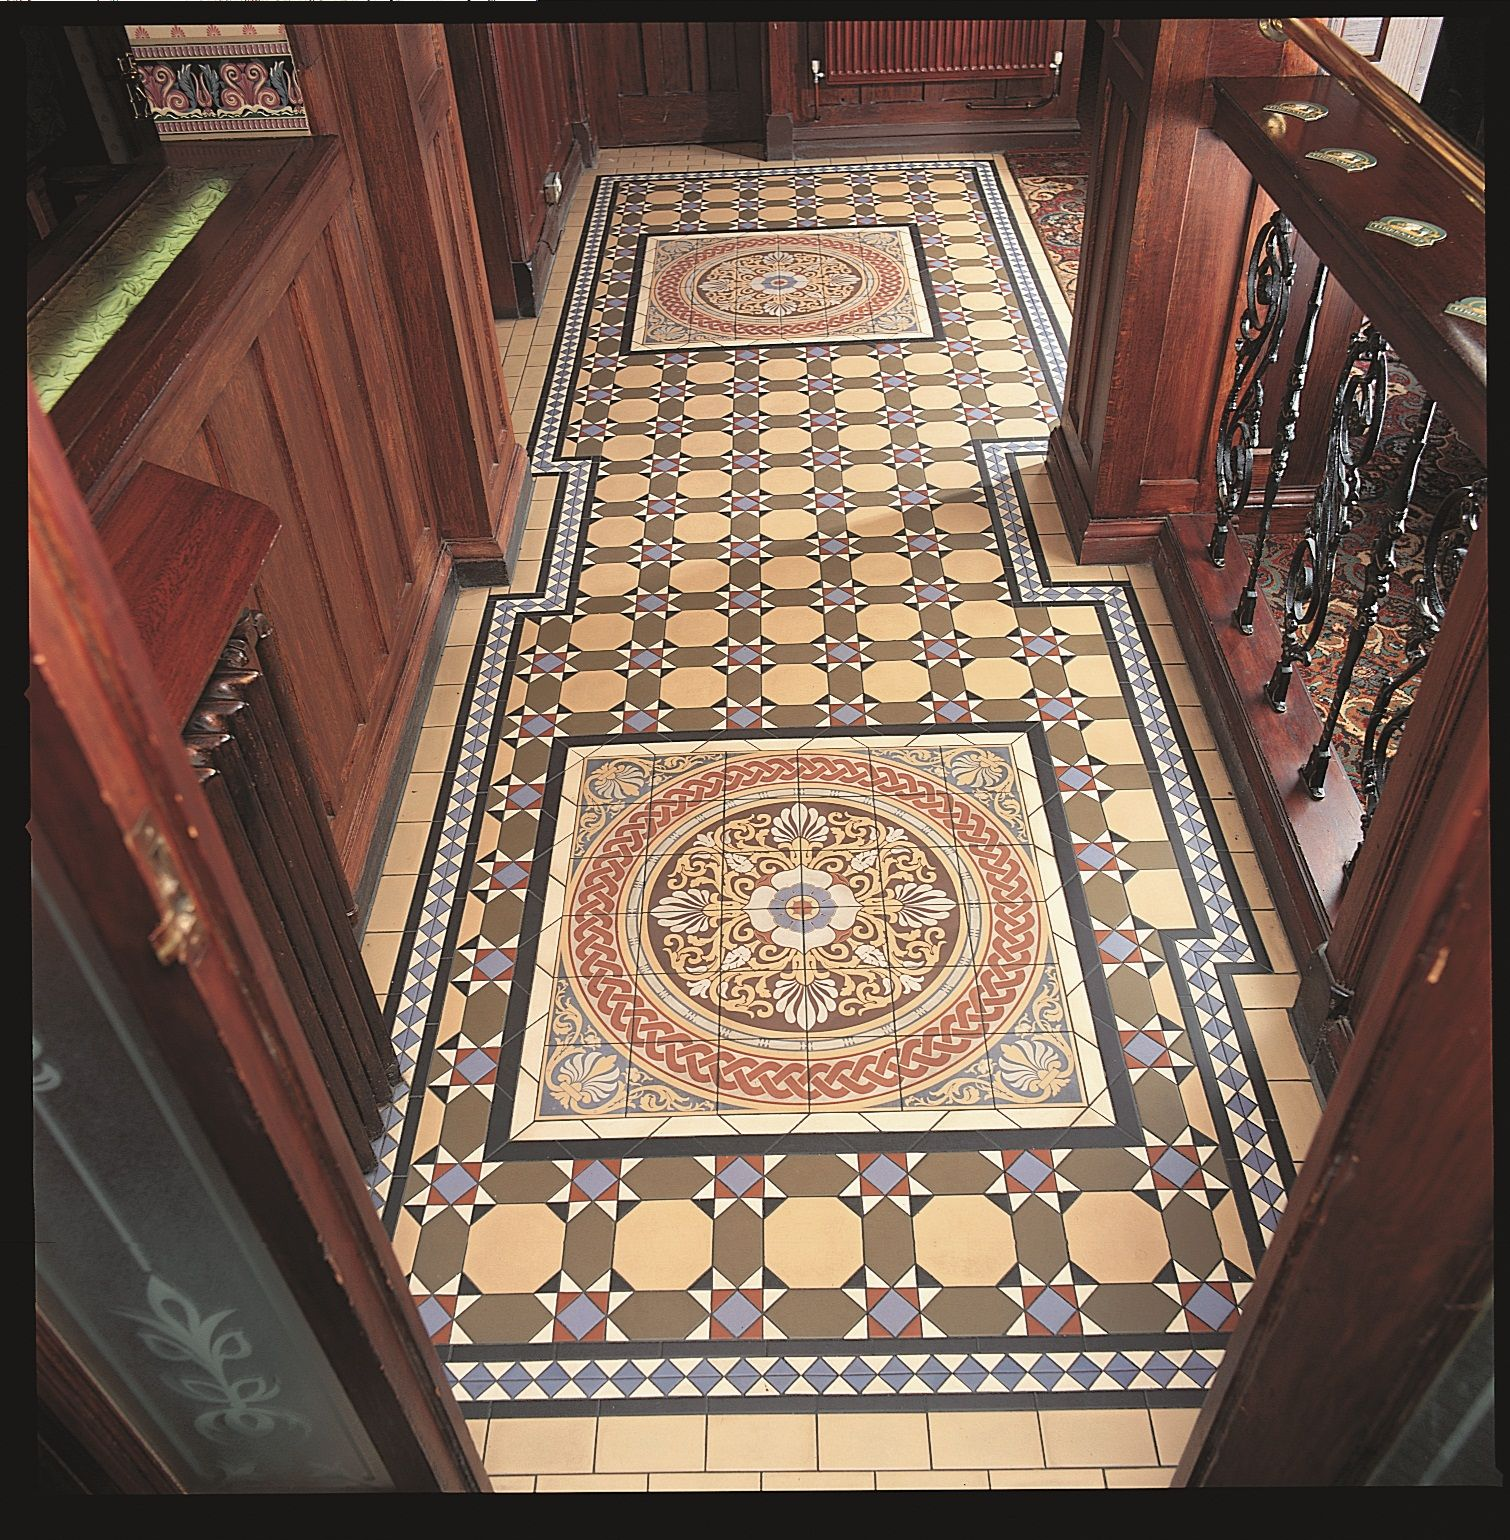 Victorian Floor Tiles Here The Inverlochy Pattern Incorporates The Palmerston Tile Set Made